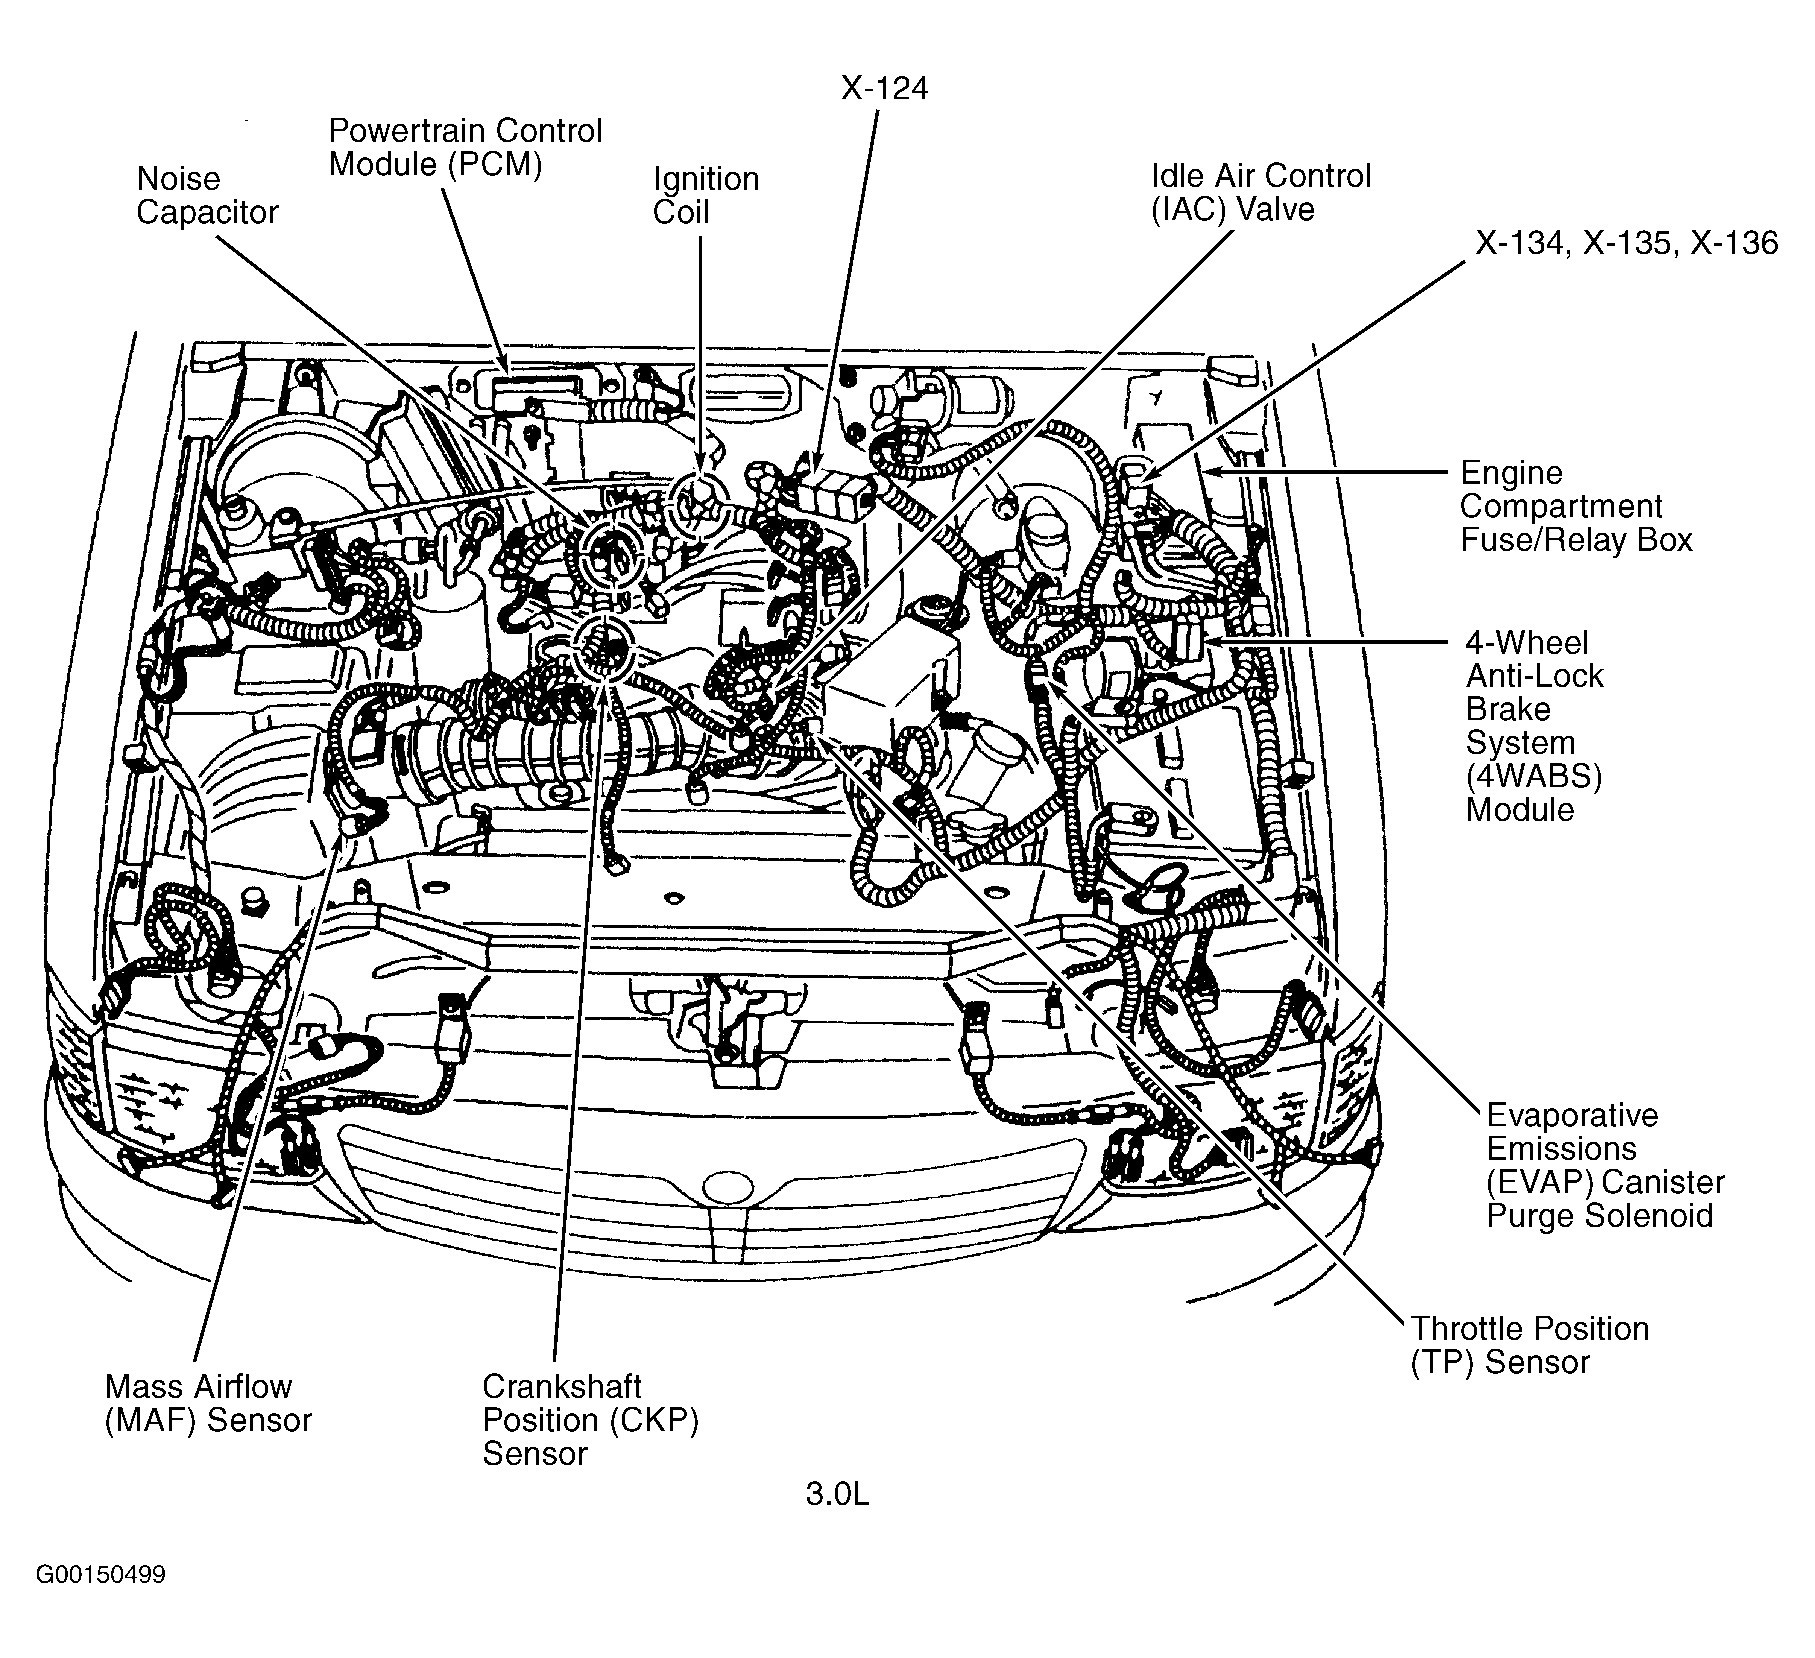 Opel Corsa Lite Engine Diagram Vauxhall Nova Fuse Box Layout ... on